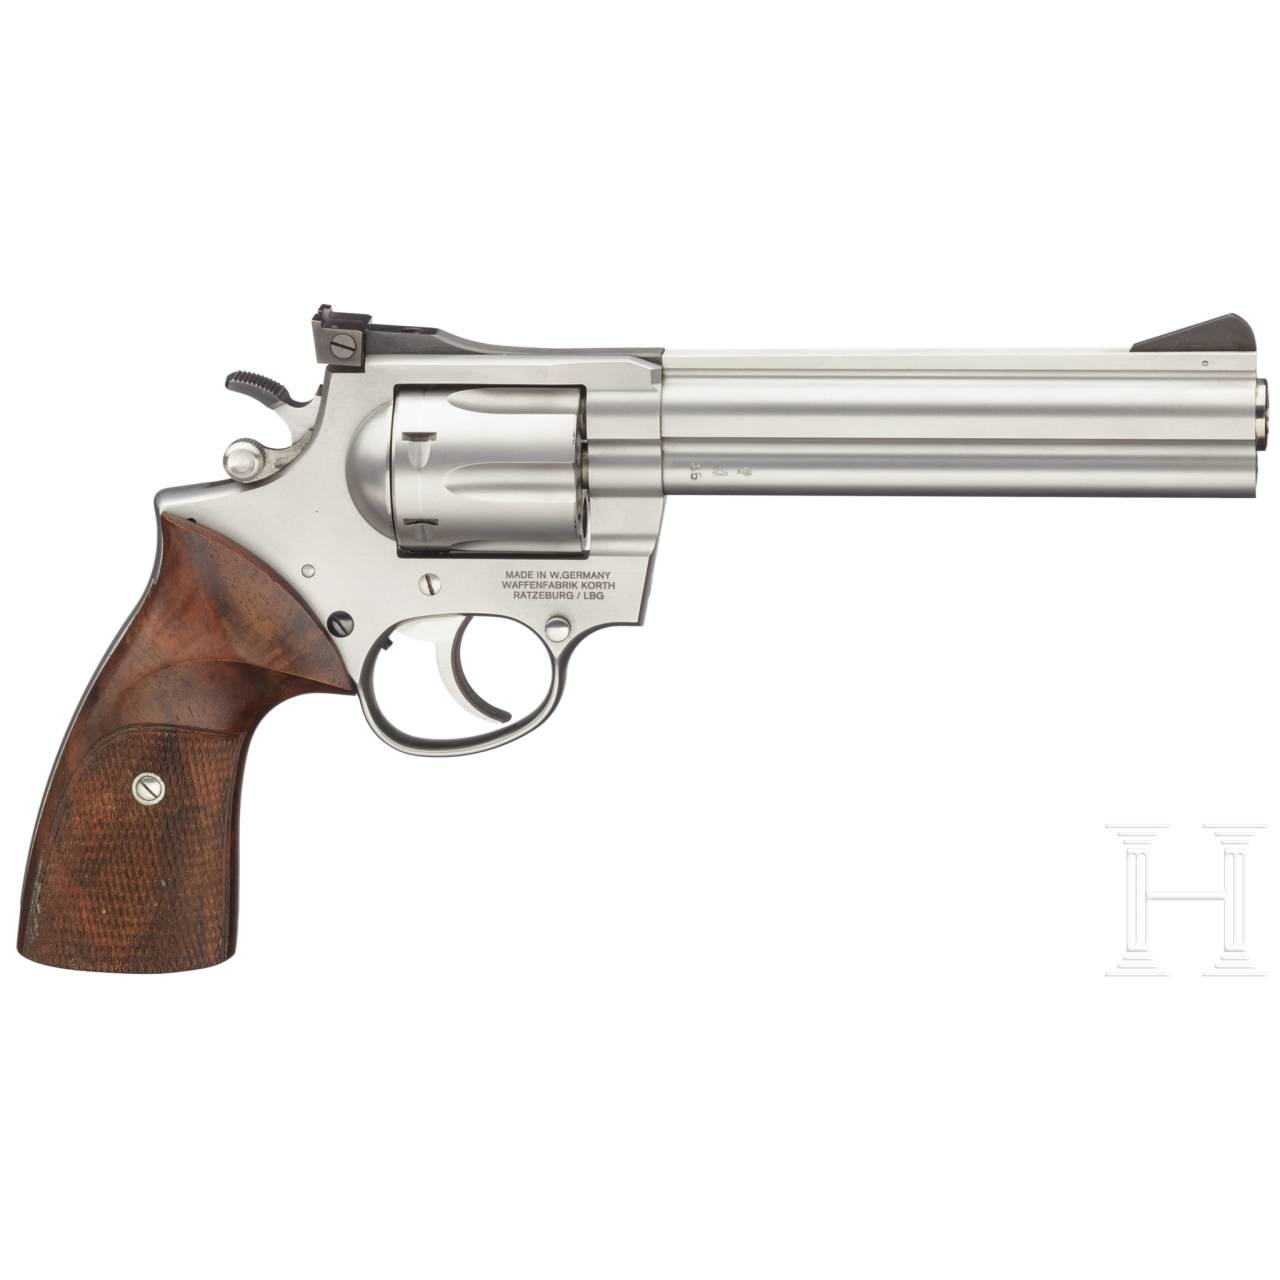 A stainless Korth revolver